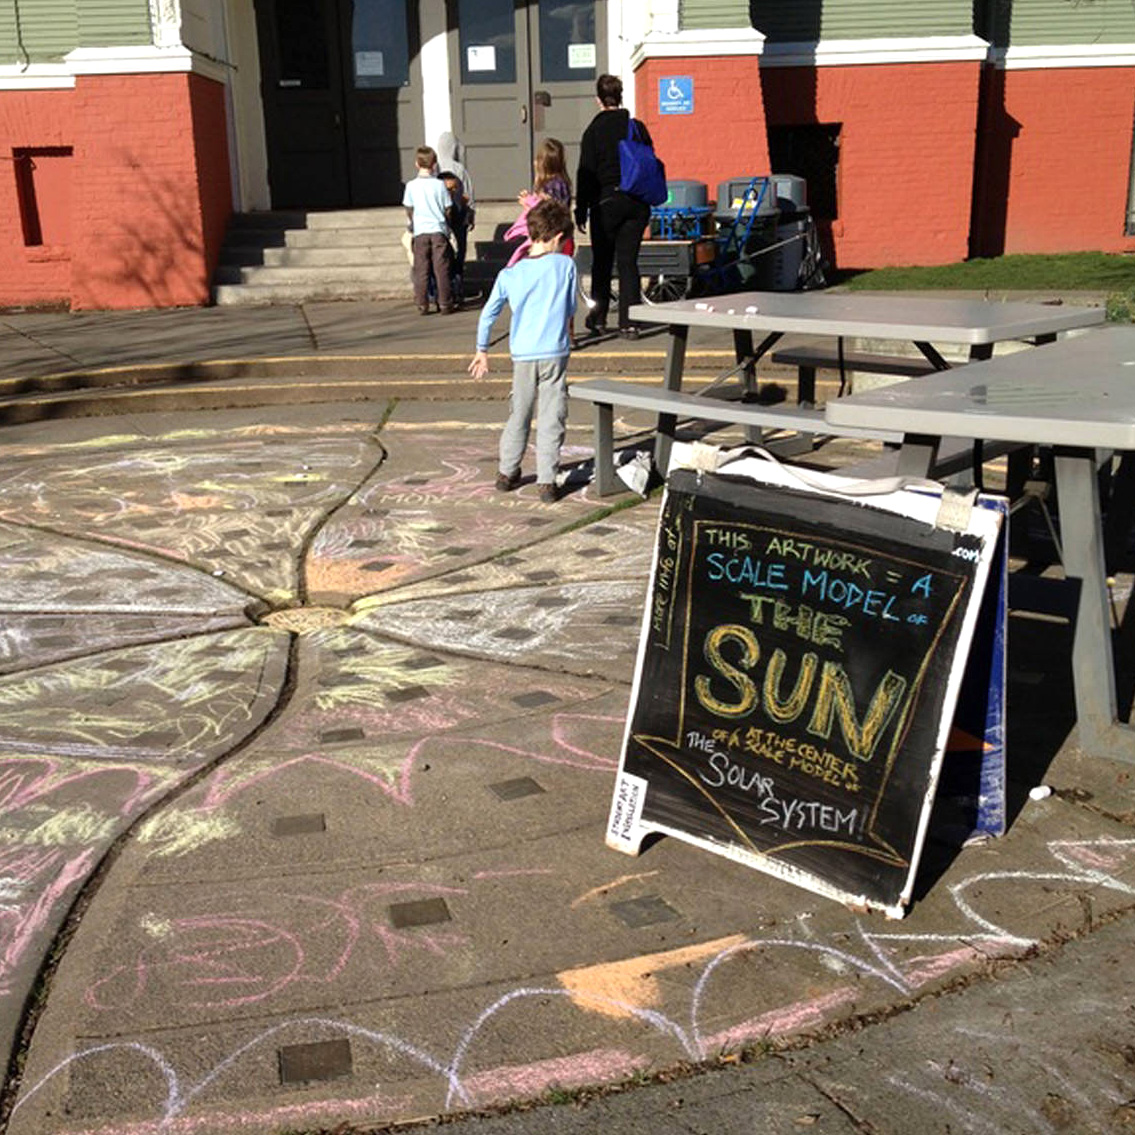 The Solar System - In January of 2016 TDA studied painting and scale via an astronomy-themed lesson plan. Our participants painted all of the planets (and a few dwarf planets too). We then created a region-wide art installation by placing scale-sized images (either on the sidewalk or on sandwich boards) at an accurate scale distance from our 18 foot wide sidewalk painting of the sun. Our planets spanned out from there throughout Seattle and out into our surrounding farmland.